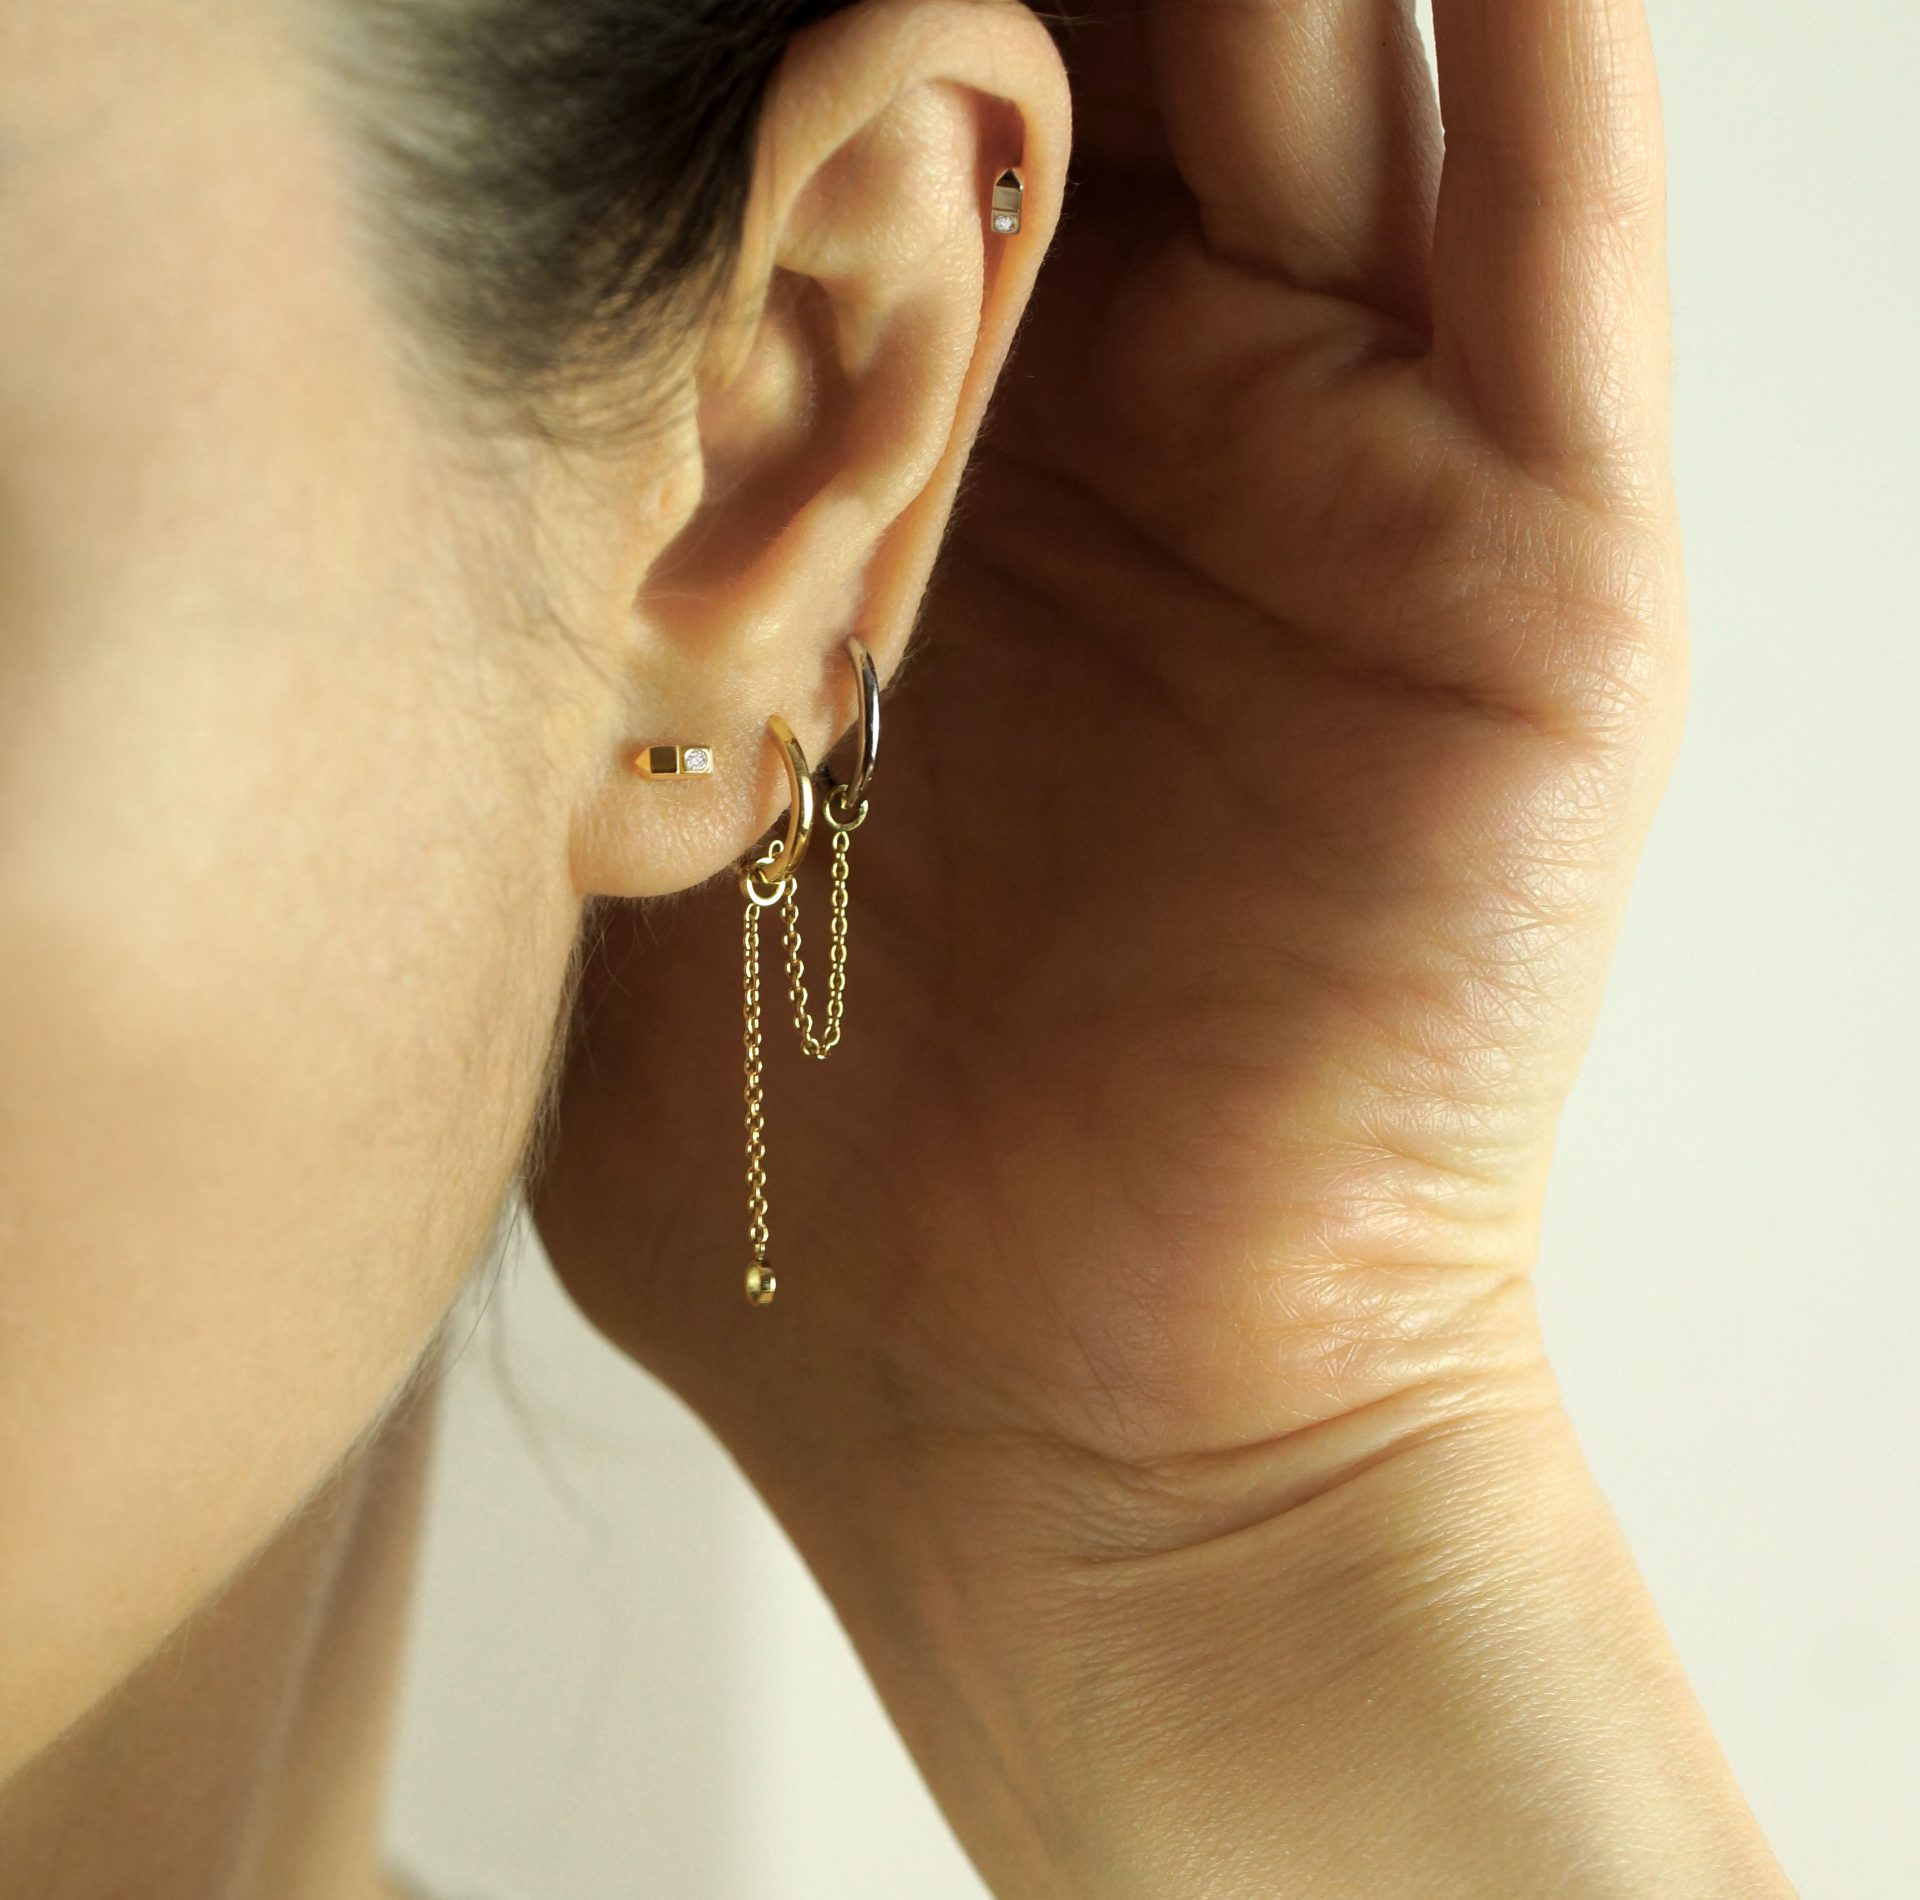 What type of jewellery should you buy for a curated ear? unisex piercing jewellery 18k gold diamonds men women ear piercings helix earrings lena cohen